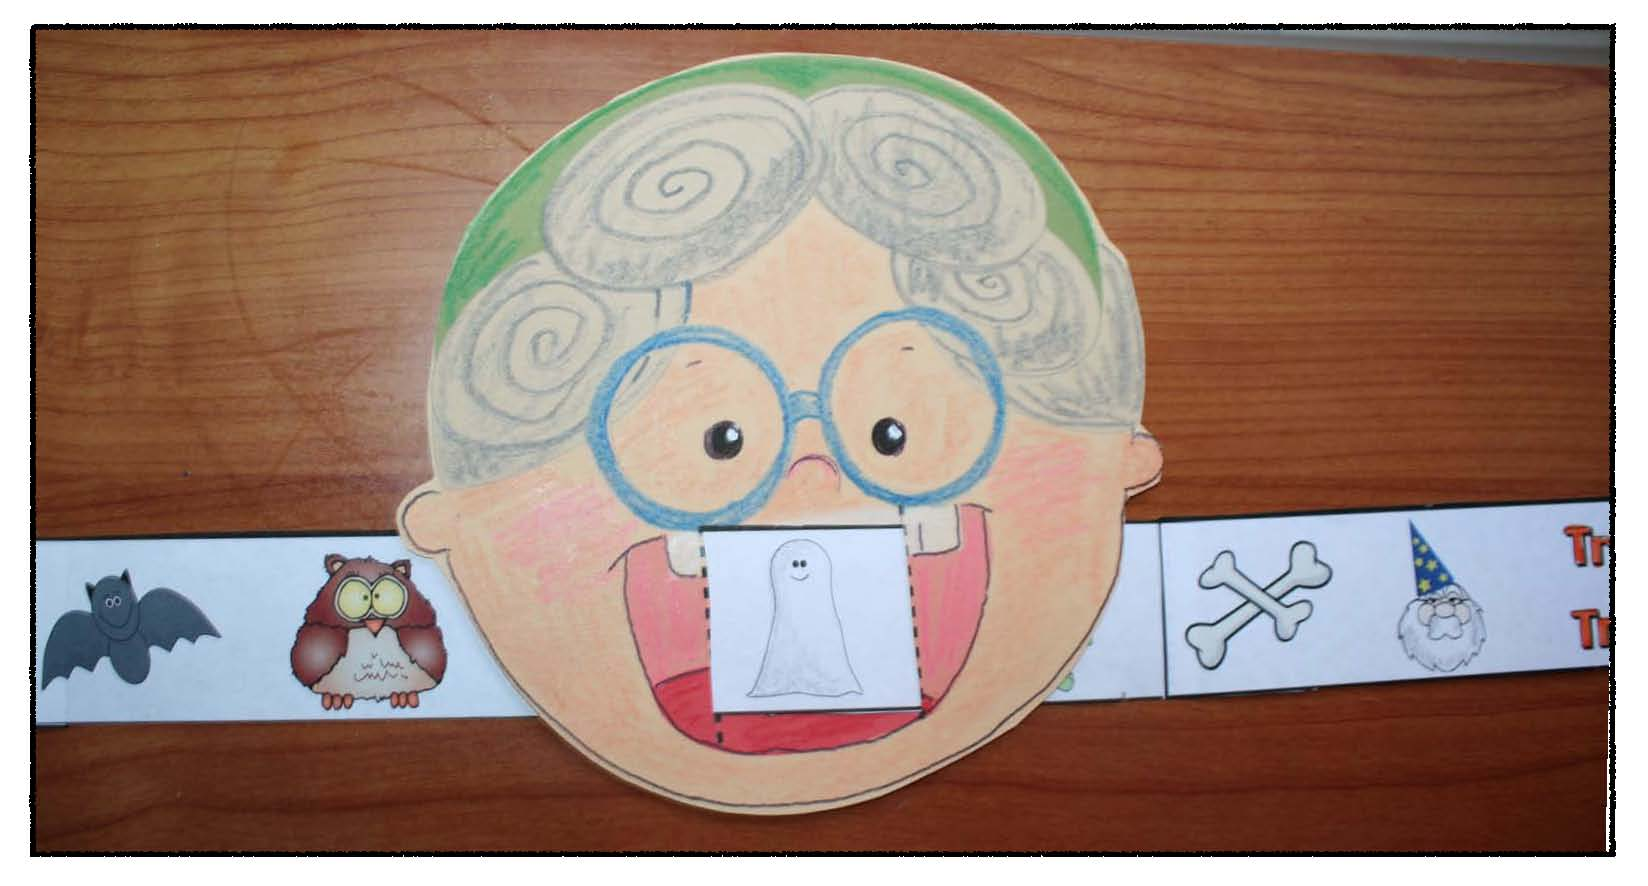 little old lady who swallowed a fly activities, storytelling sliders, storytelling crafts, the little old lady who swallowed a bat activities, halloween stories, sequencing a story activities, retelling a story activities, halloween games, halloween activities, pumpkin games, pumpkin centers